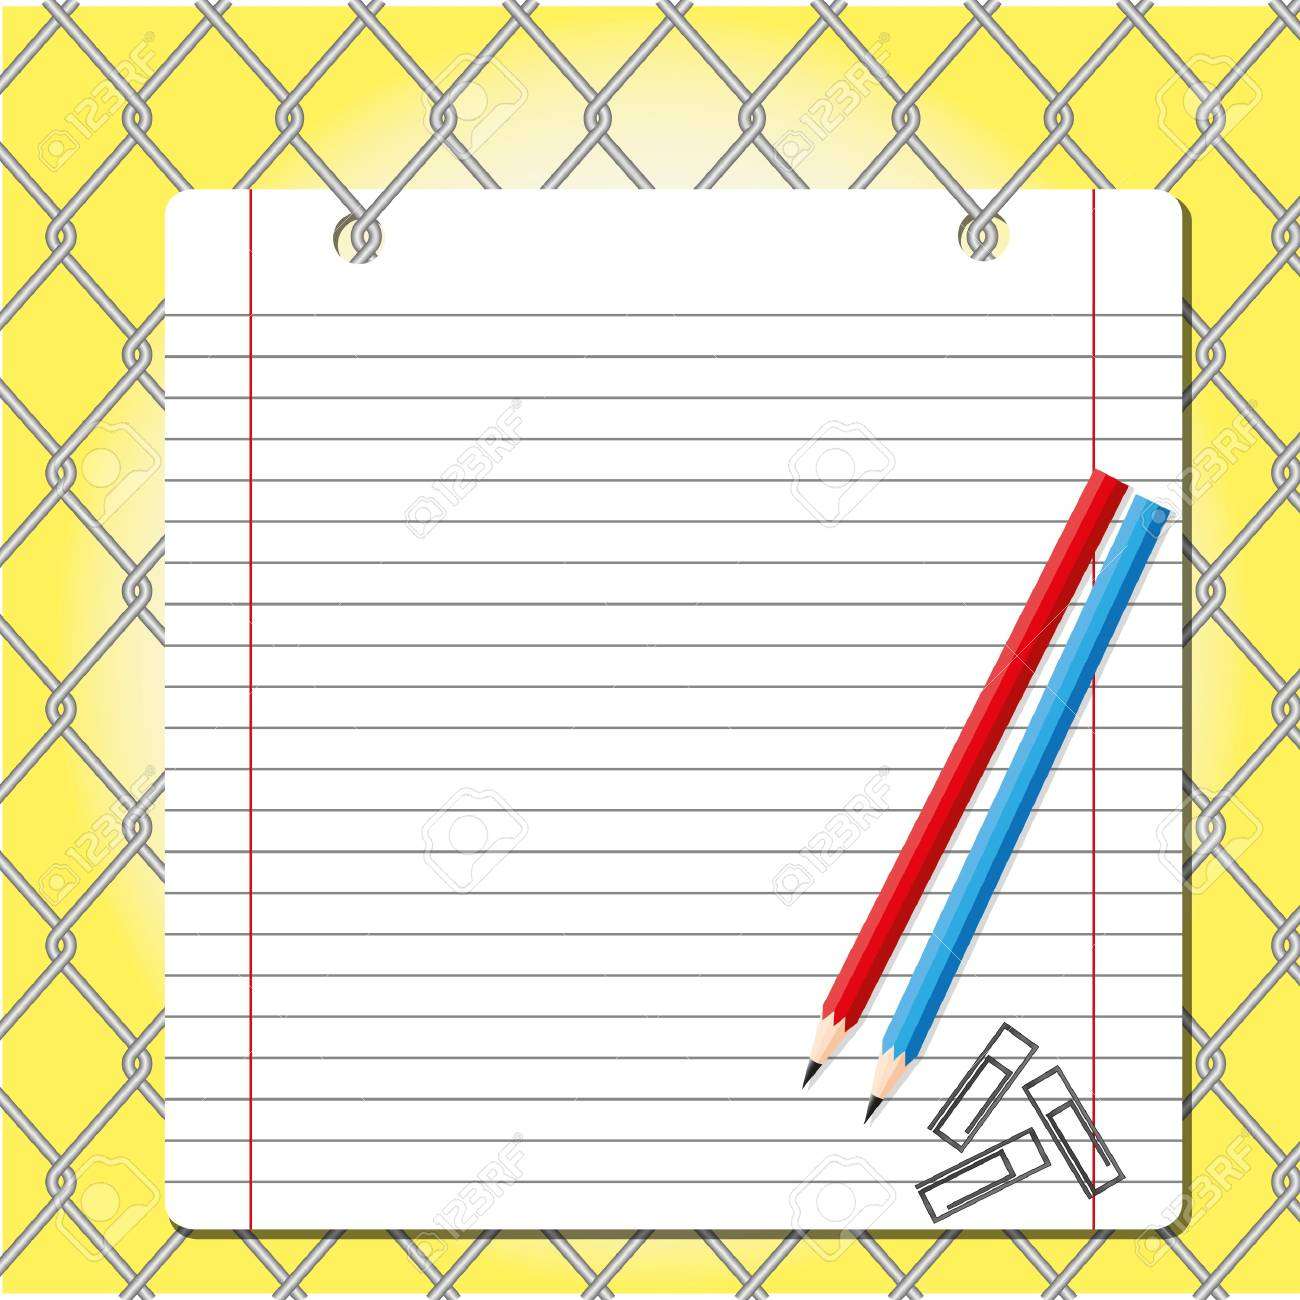 Paper sheet with pencil on  net background. Stock Photo - 11570676